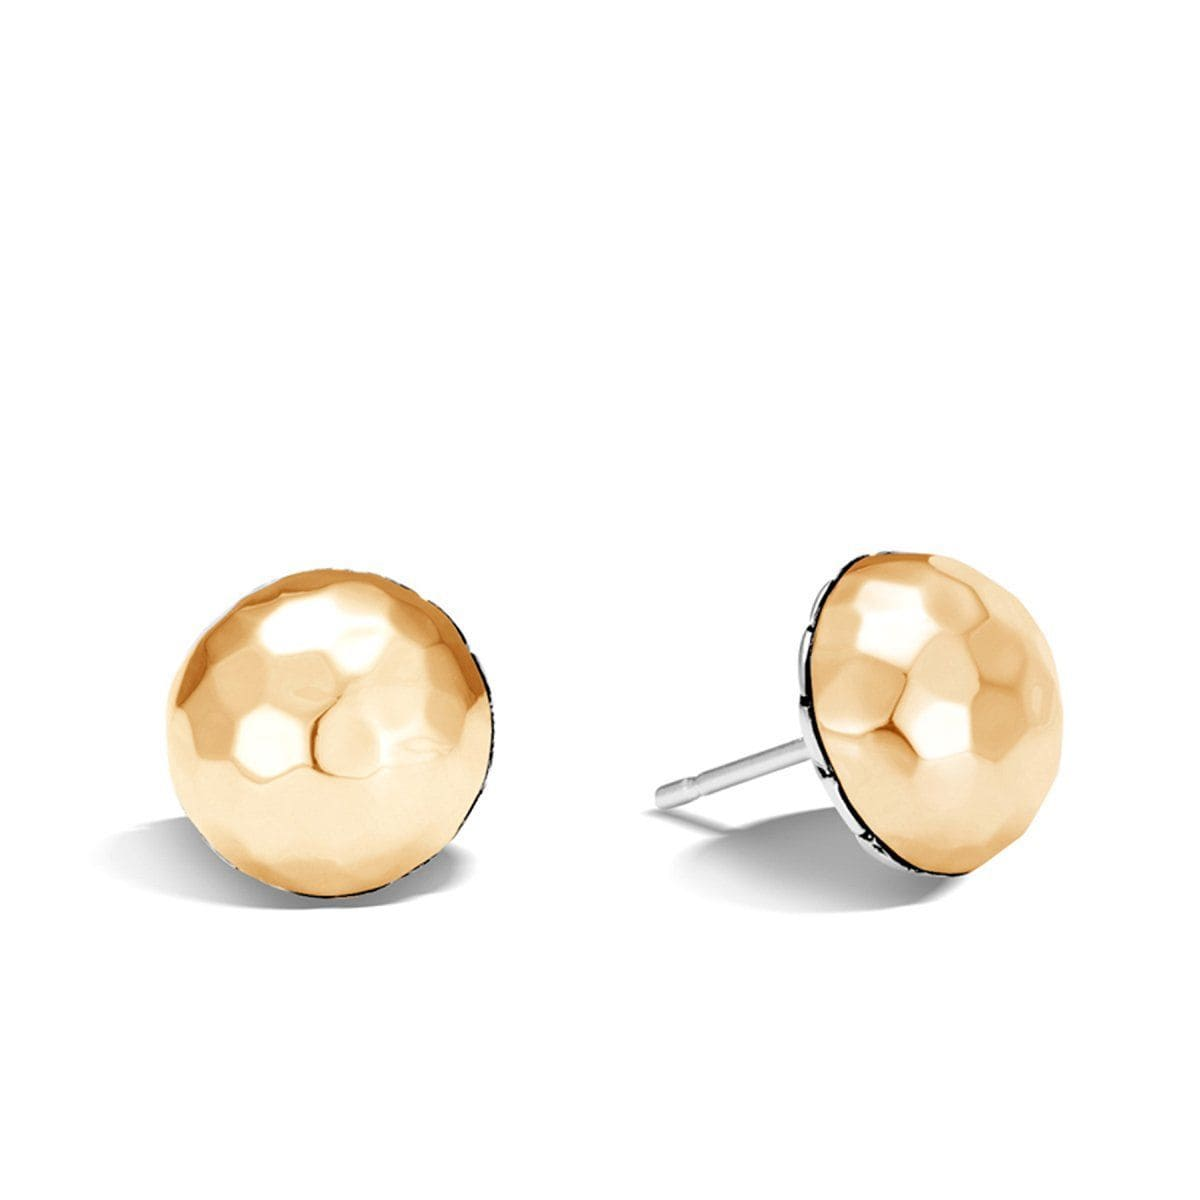 Hammered Gold Large Stud Earrings - EZ999578-John Hardy-Renee Taylor Gallery